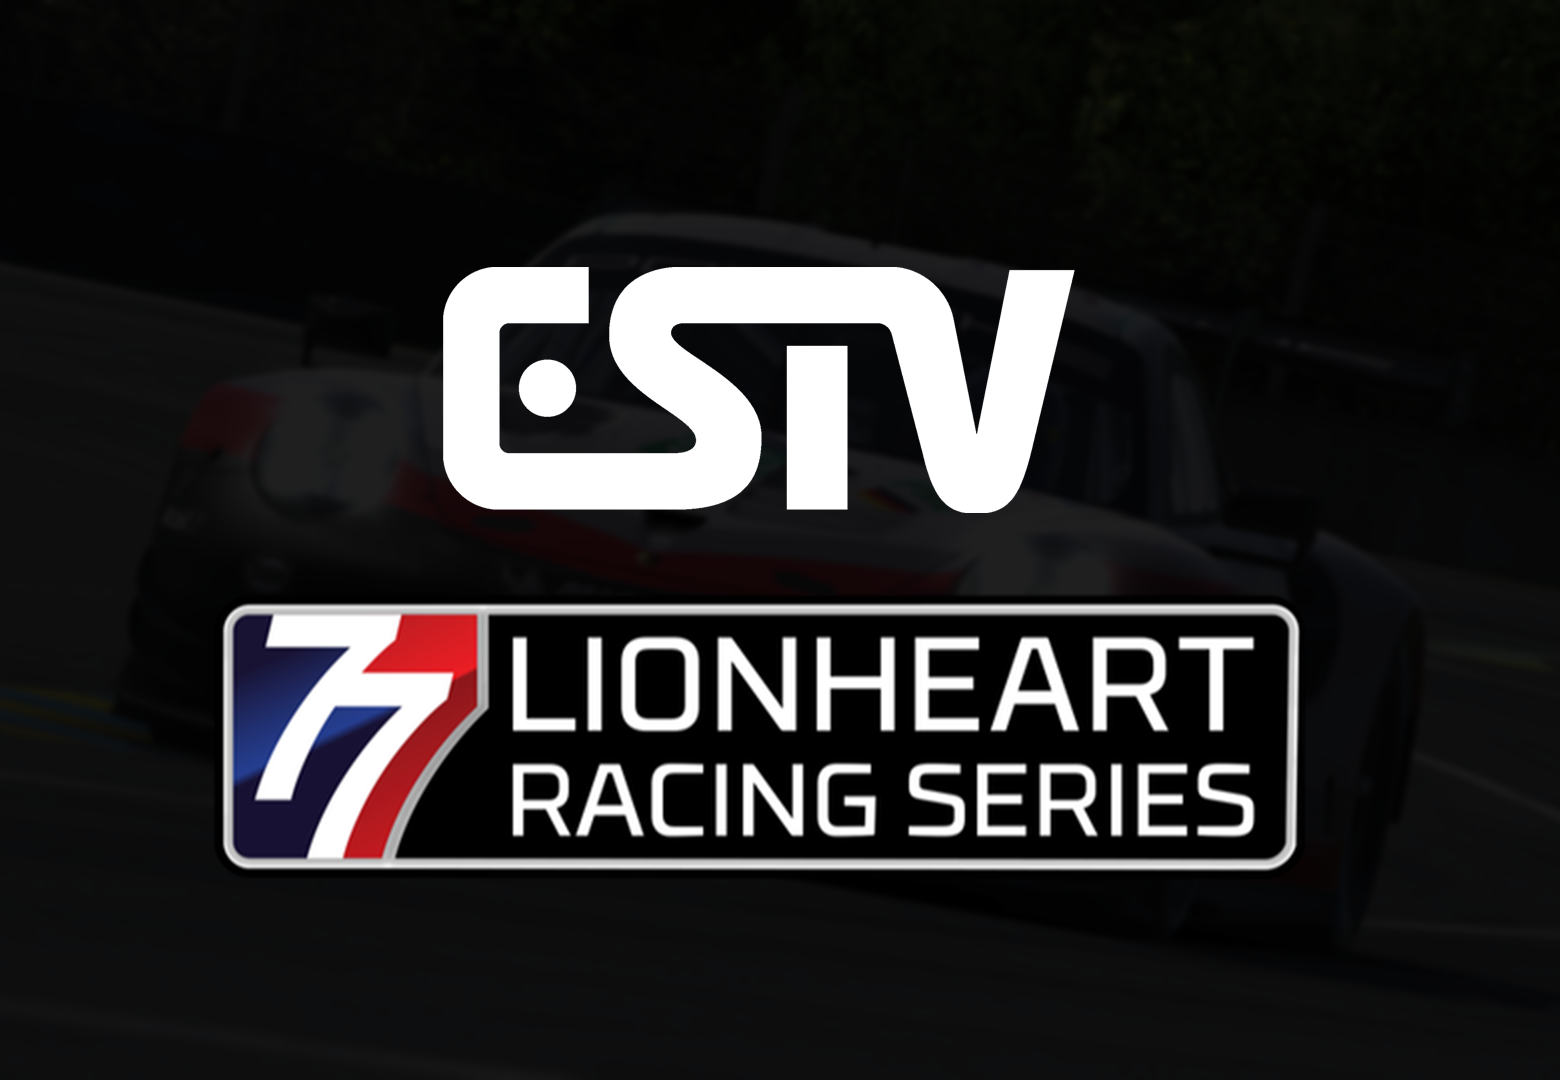 Exclusive: ESTV signs multi-year deal with Lionheart Racing Series